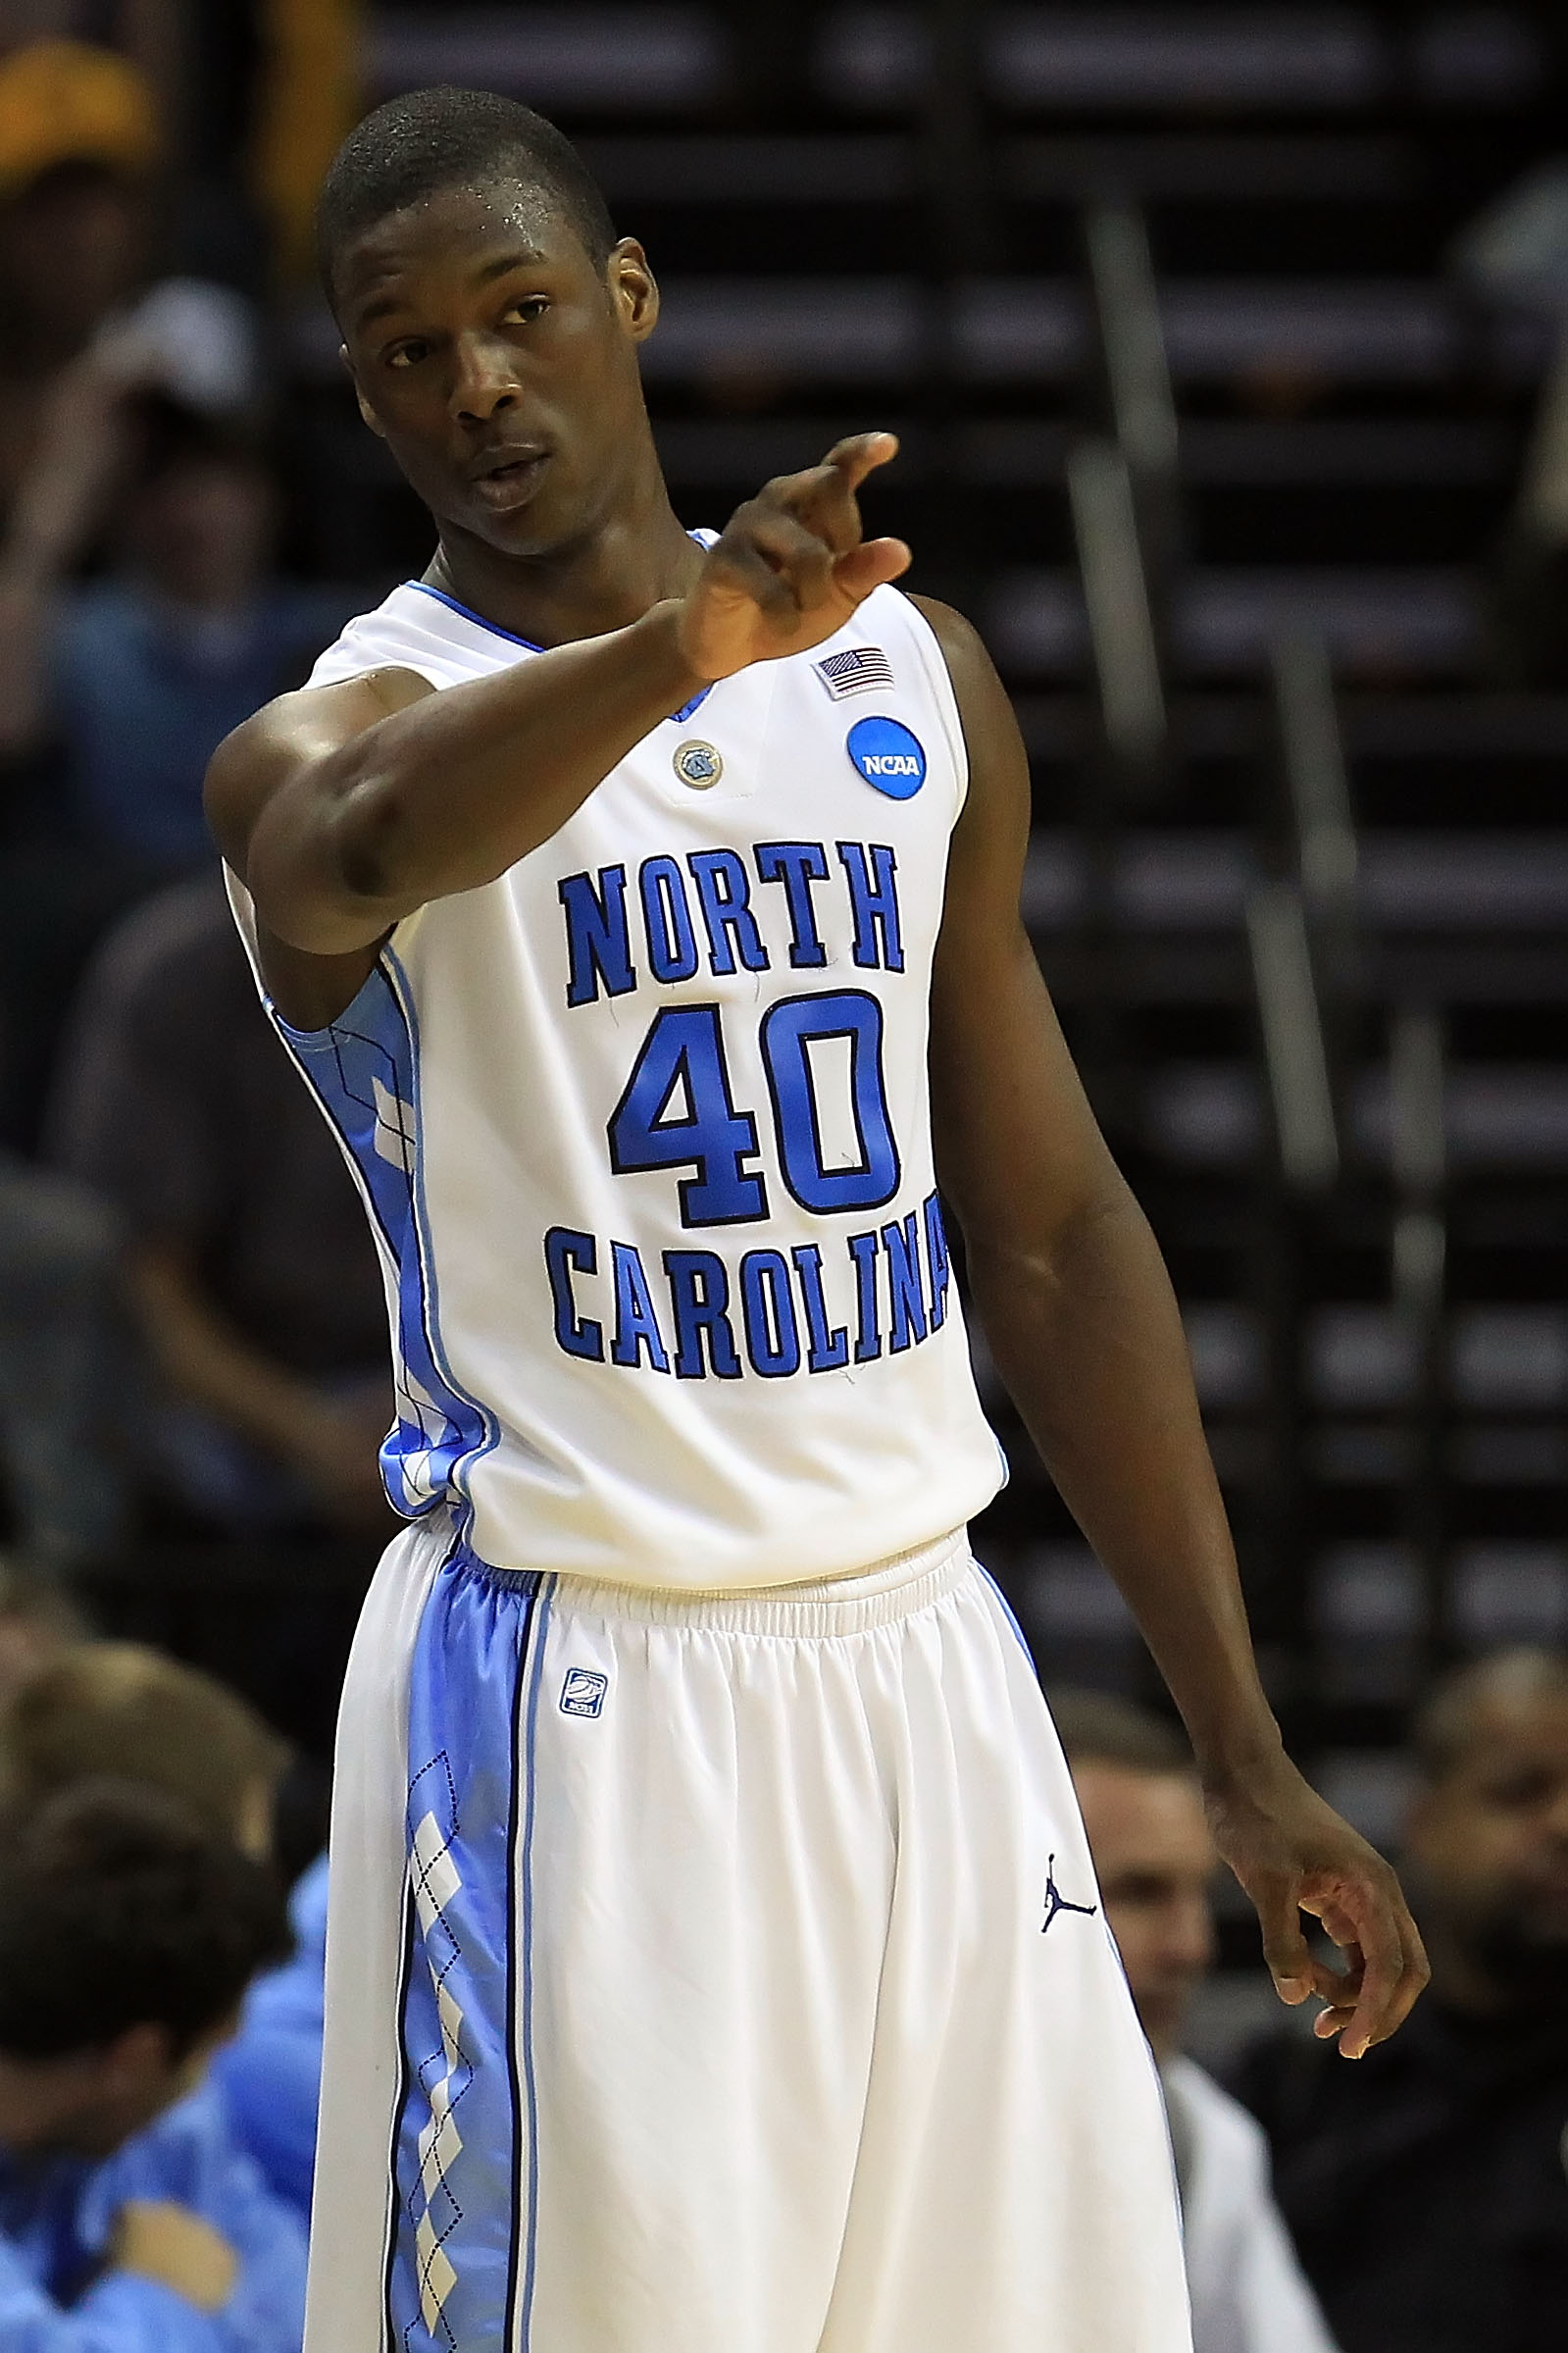 CHARLOTTE, NC - MARCH 20:  Harrison Barnes #40 of the North Carolina Tar Heels points in the second half while taking on the Washington Huskies during the third round of the 2011 NCAA men's basketball tournament at Time Warner Cable Arena on March 20, 201